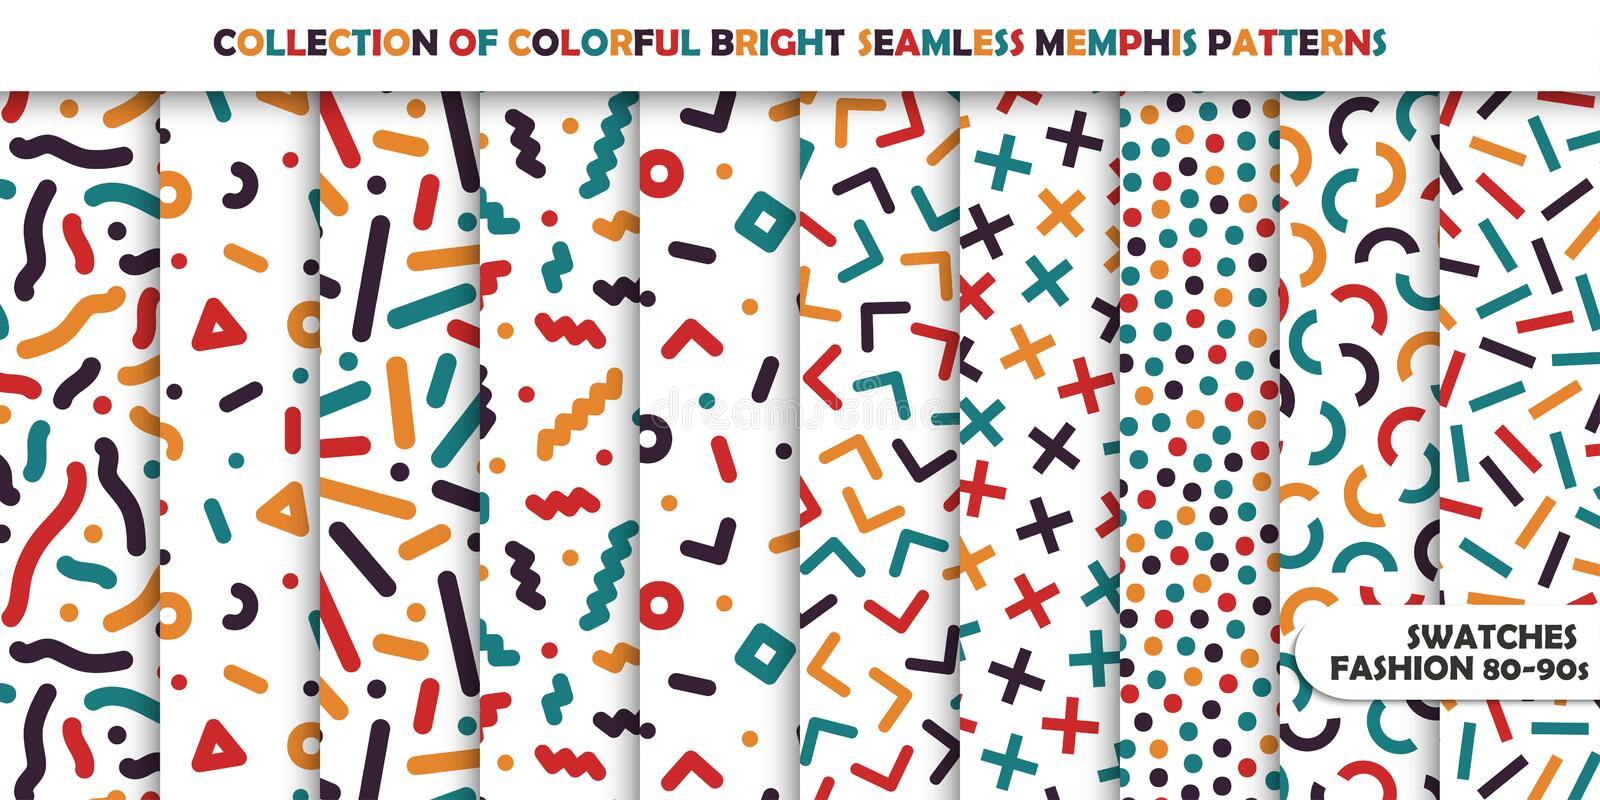 Collection of bright colorful seamless patterns. Memphis mosaic design - retro fashion style 80-90s stock illustration